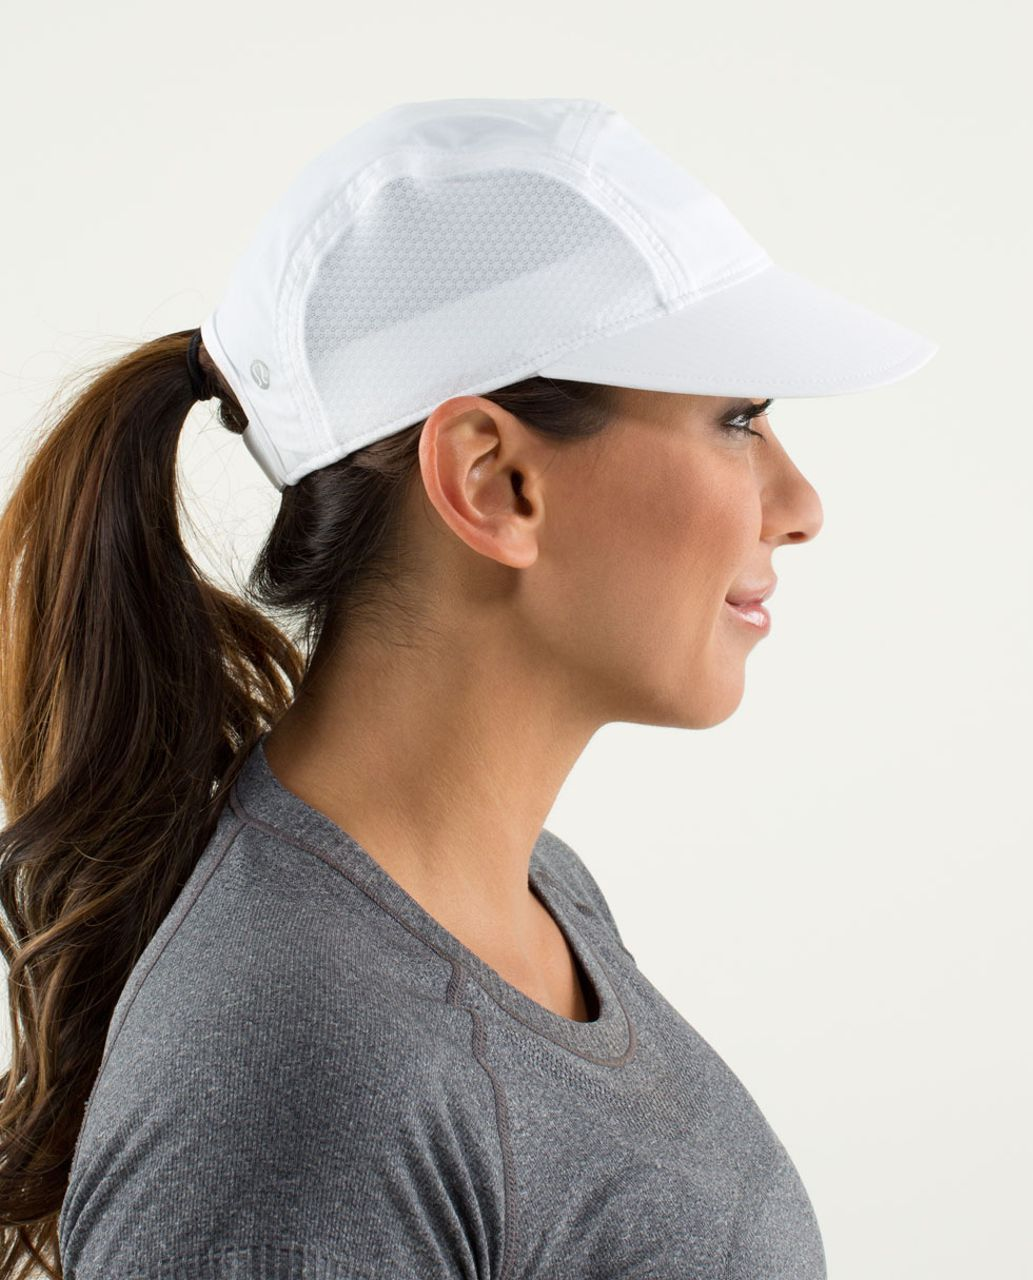 Lululemon Sun Chaser Run Hat - White (First Release)